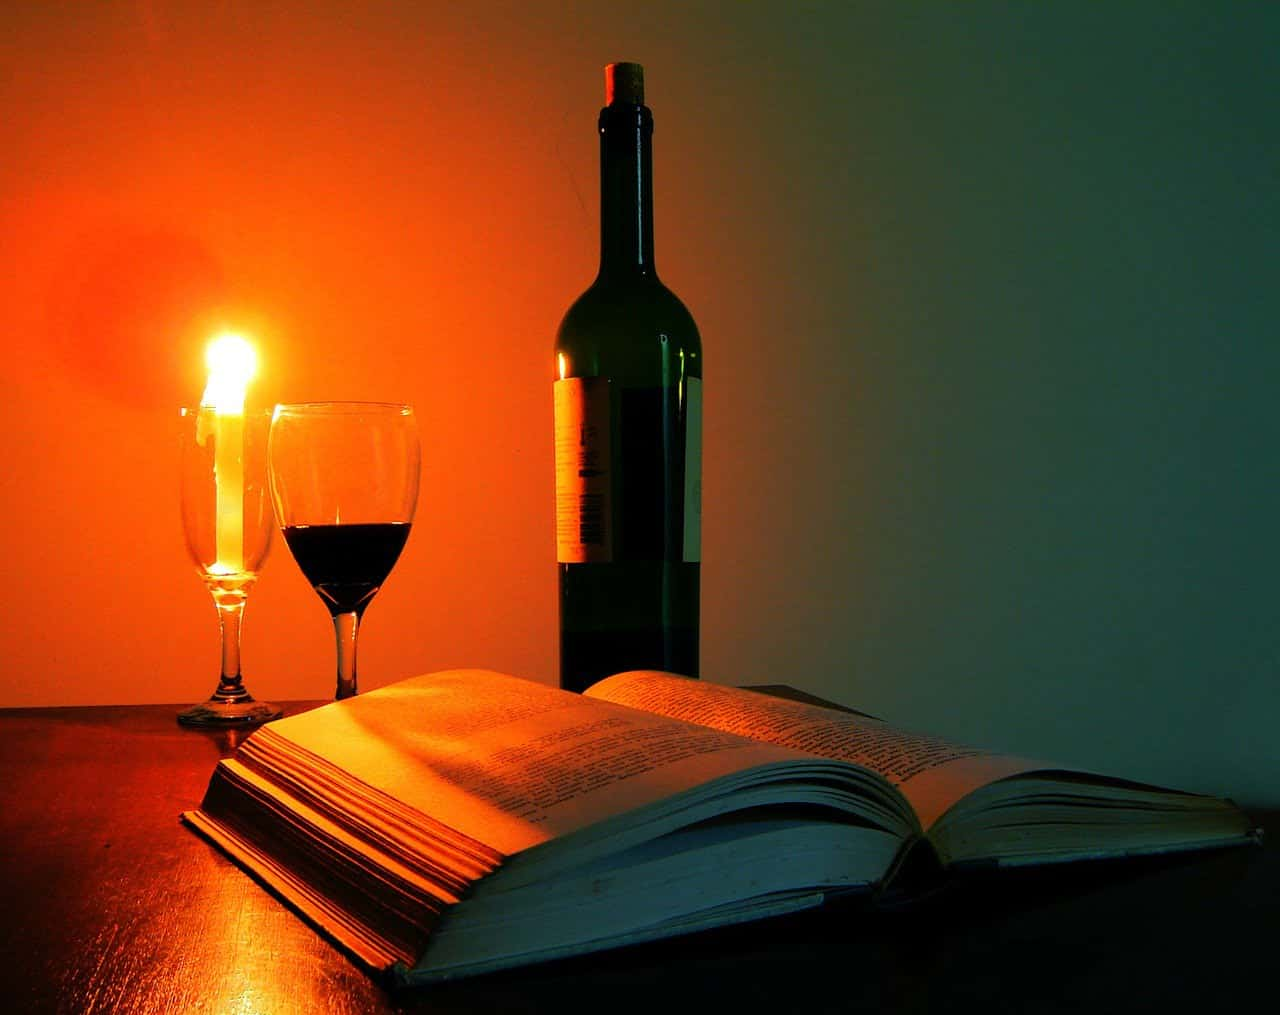 glass of wine, book, candle